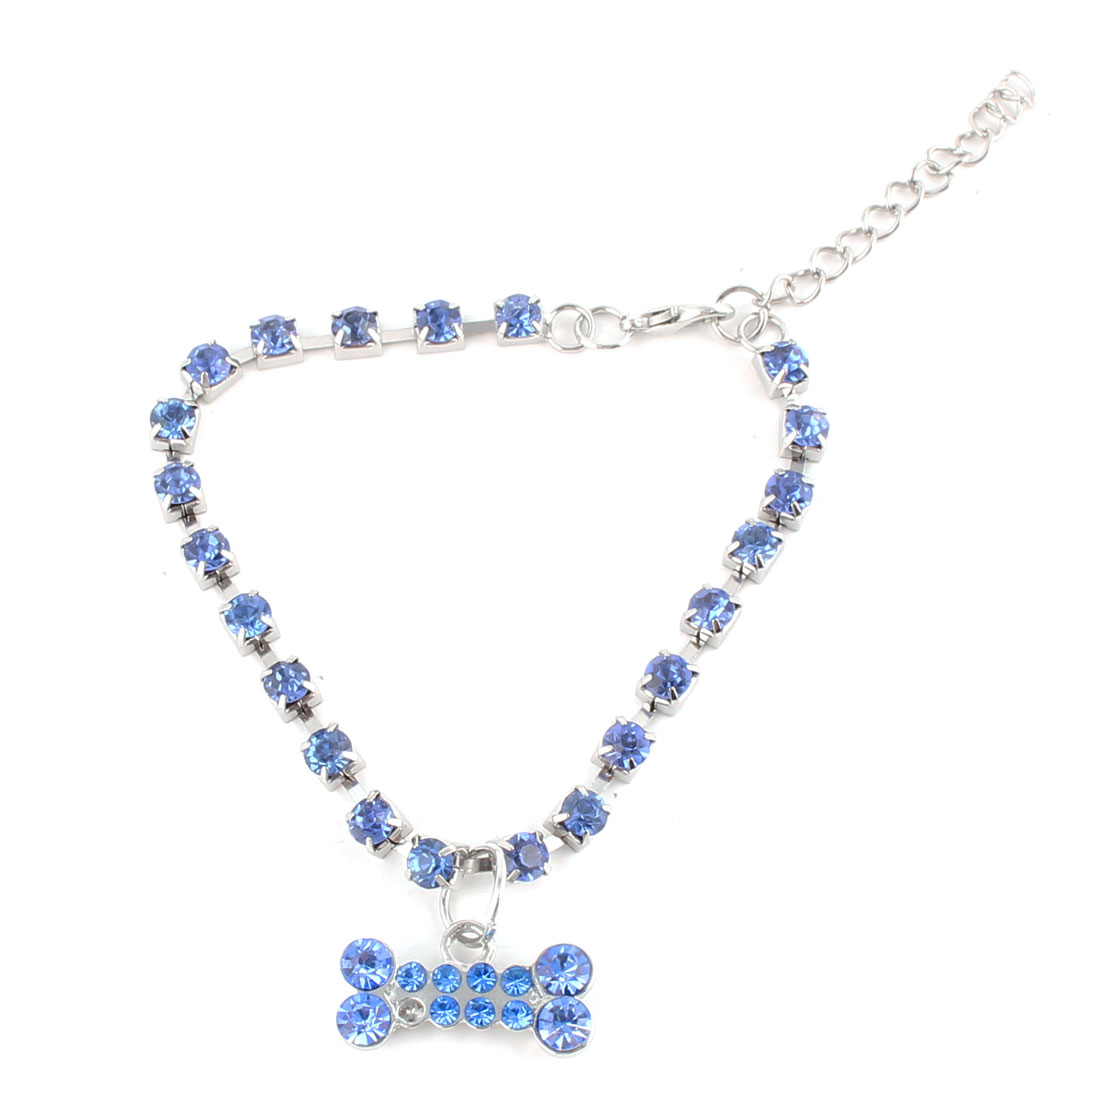 Pet Puppy Dog Bone Pattern Pendant Rhinestone Inlaid Necklace Neck Chain Blue